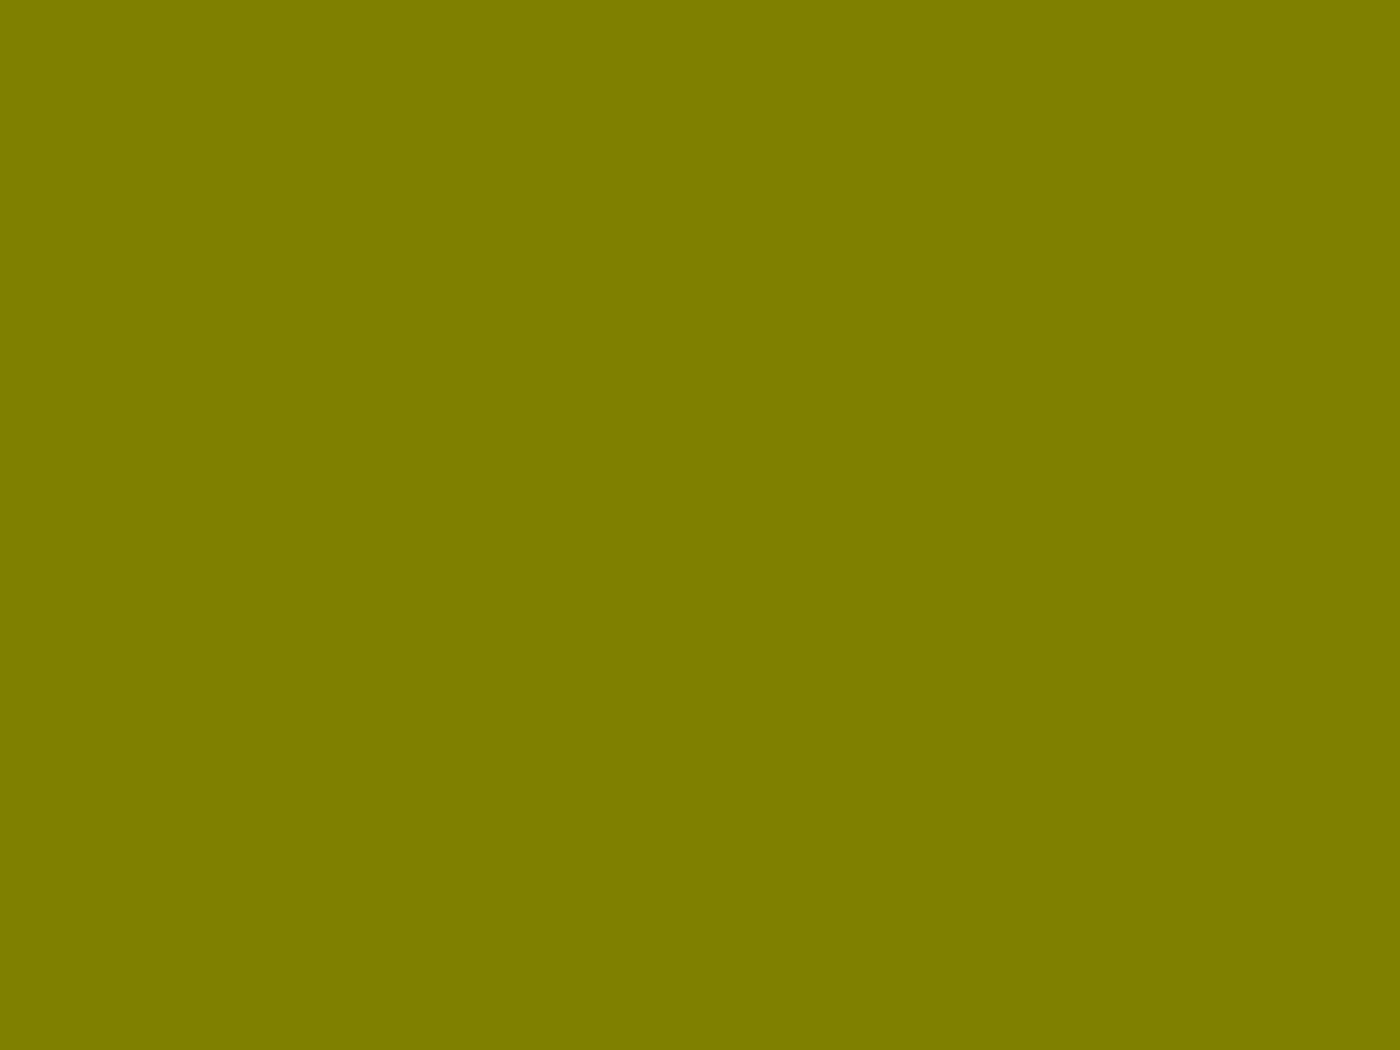 1400x1050 Olive Solid Color Background